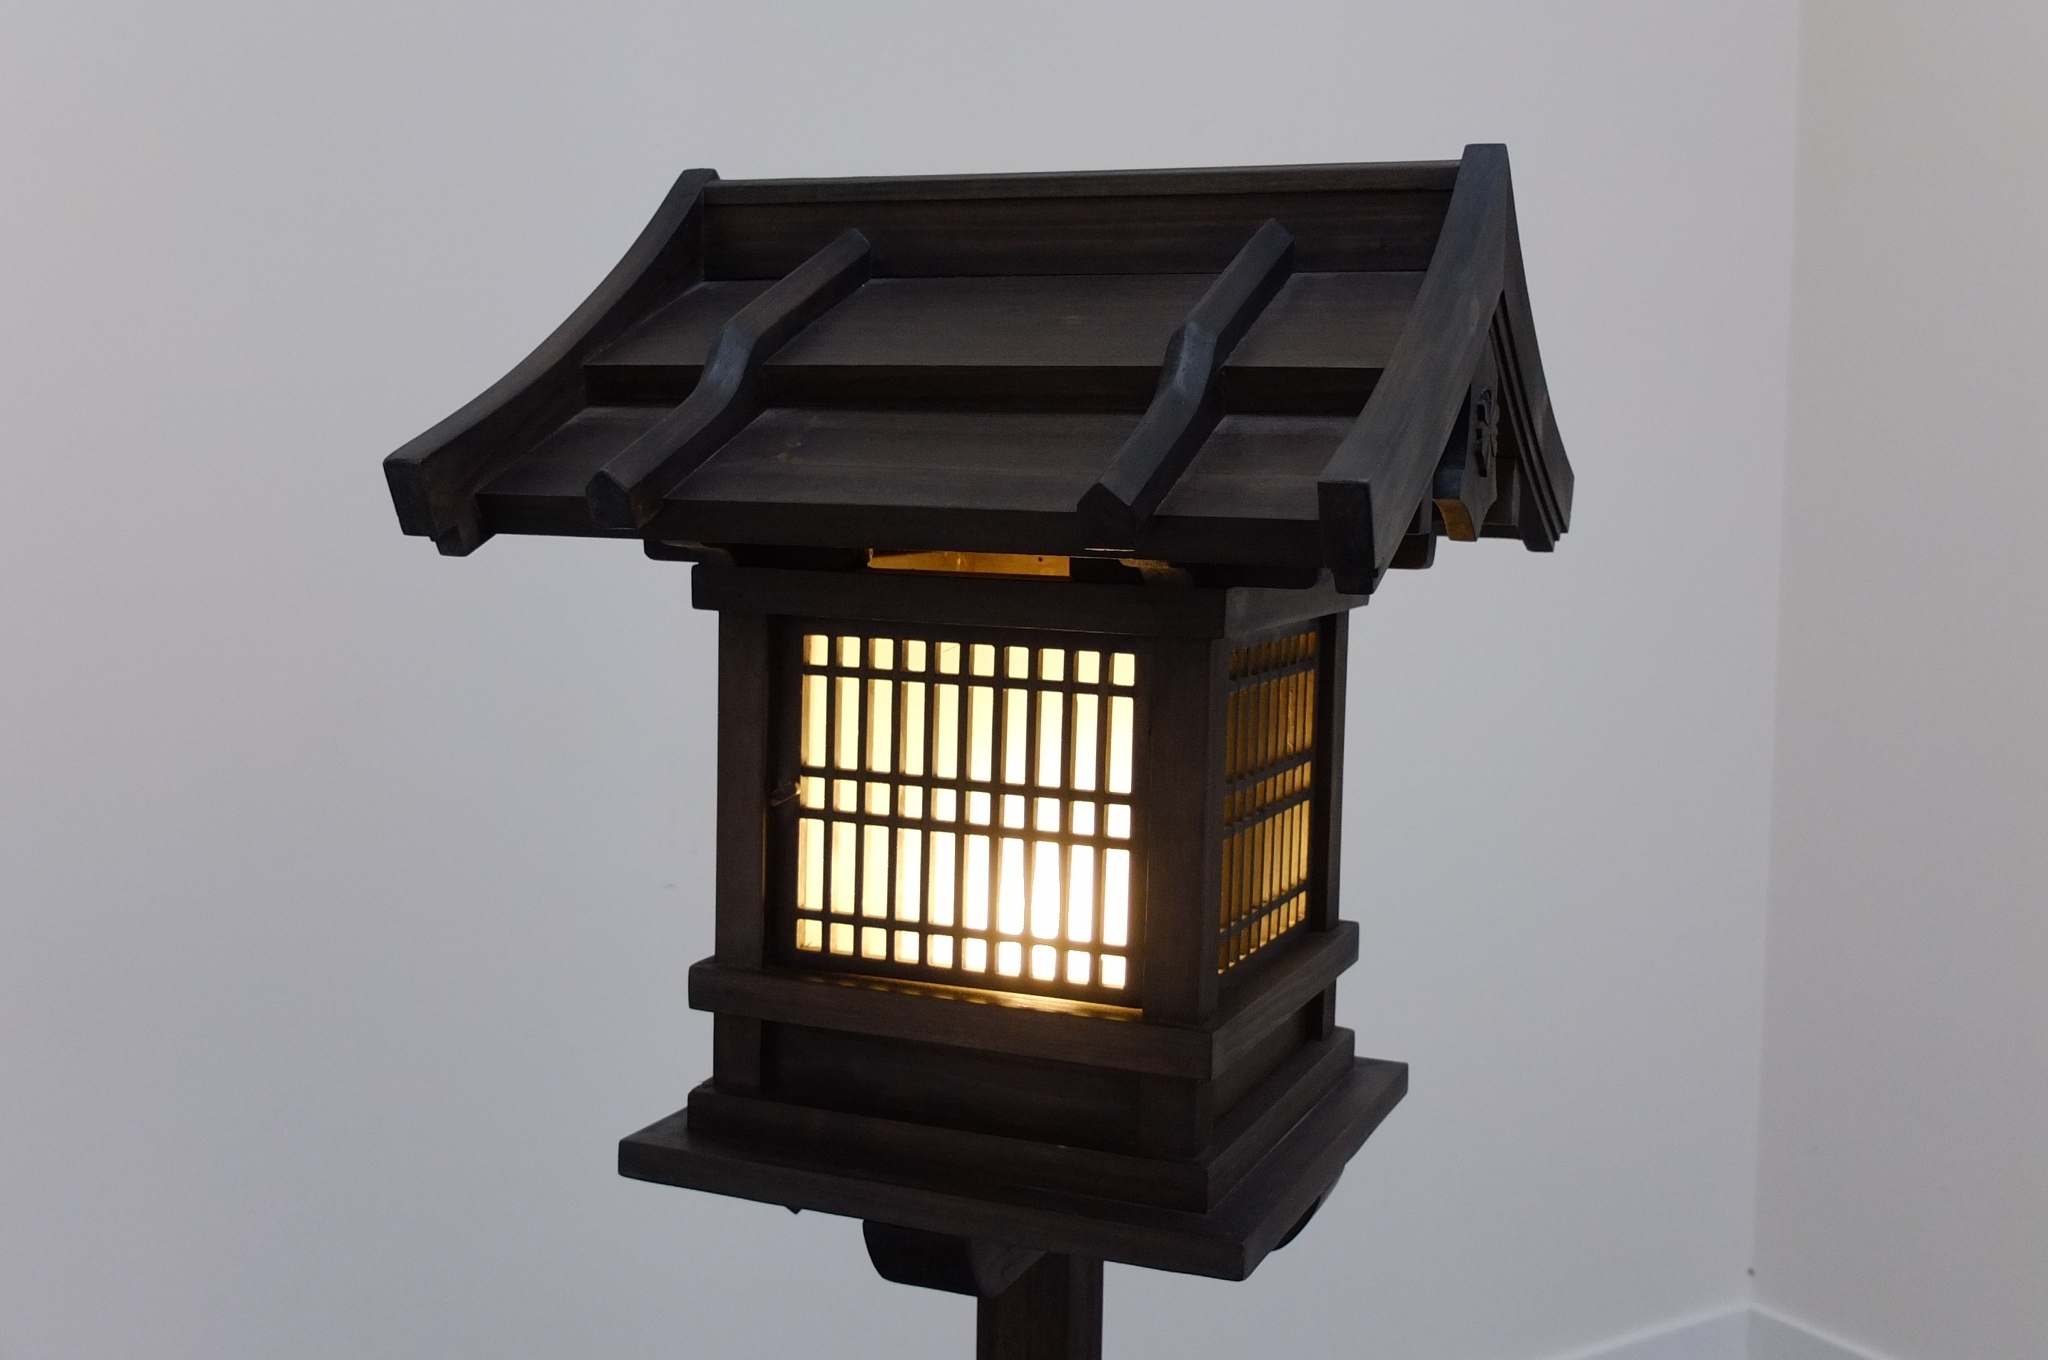 Japanese Wooden Lantern, Outdoor (Wl2) – Eastern Classics regarding Outdoor Lighting Japanese Lanterns (Image 16 of 20)